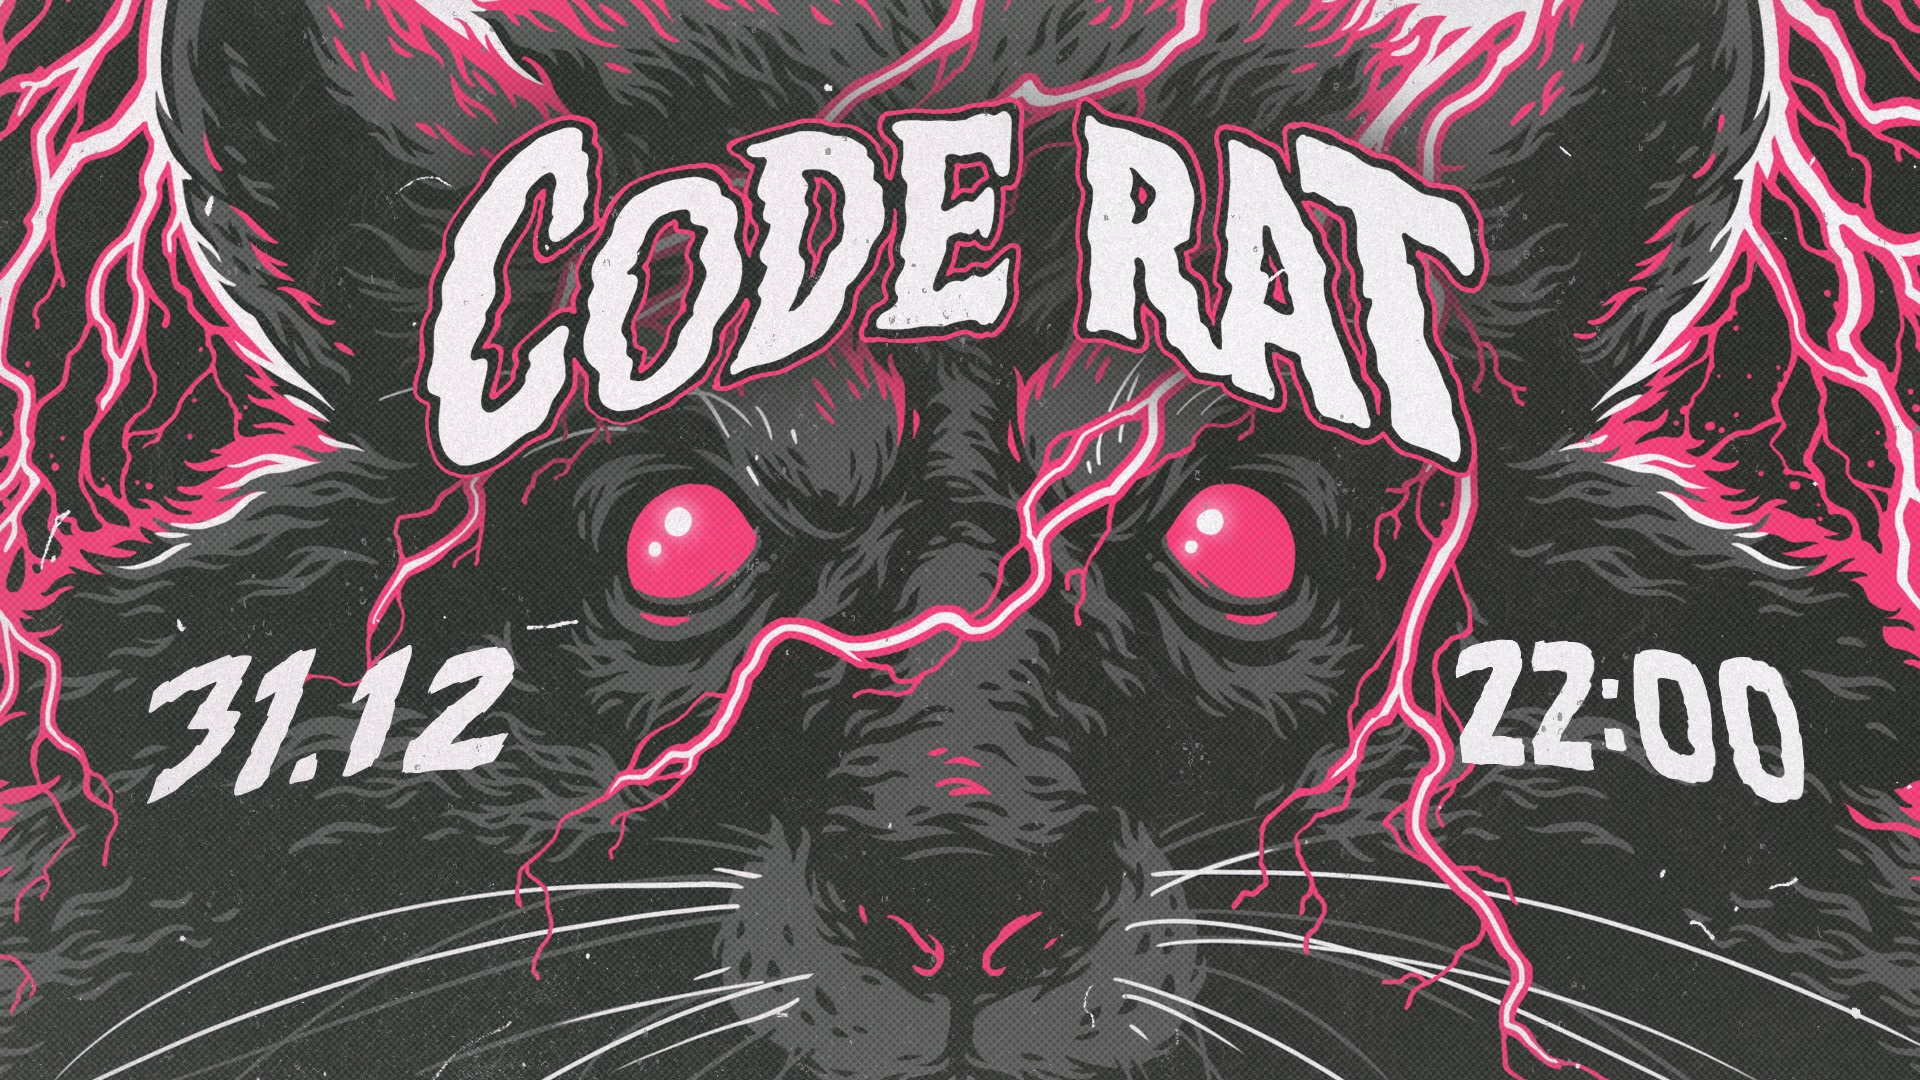 Code RAT party new year kyiv